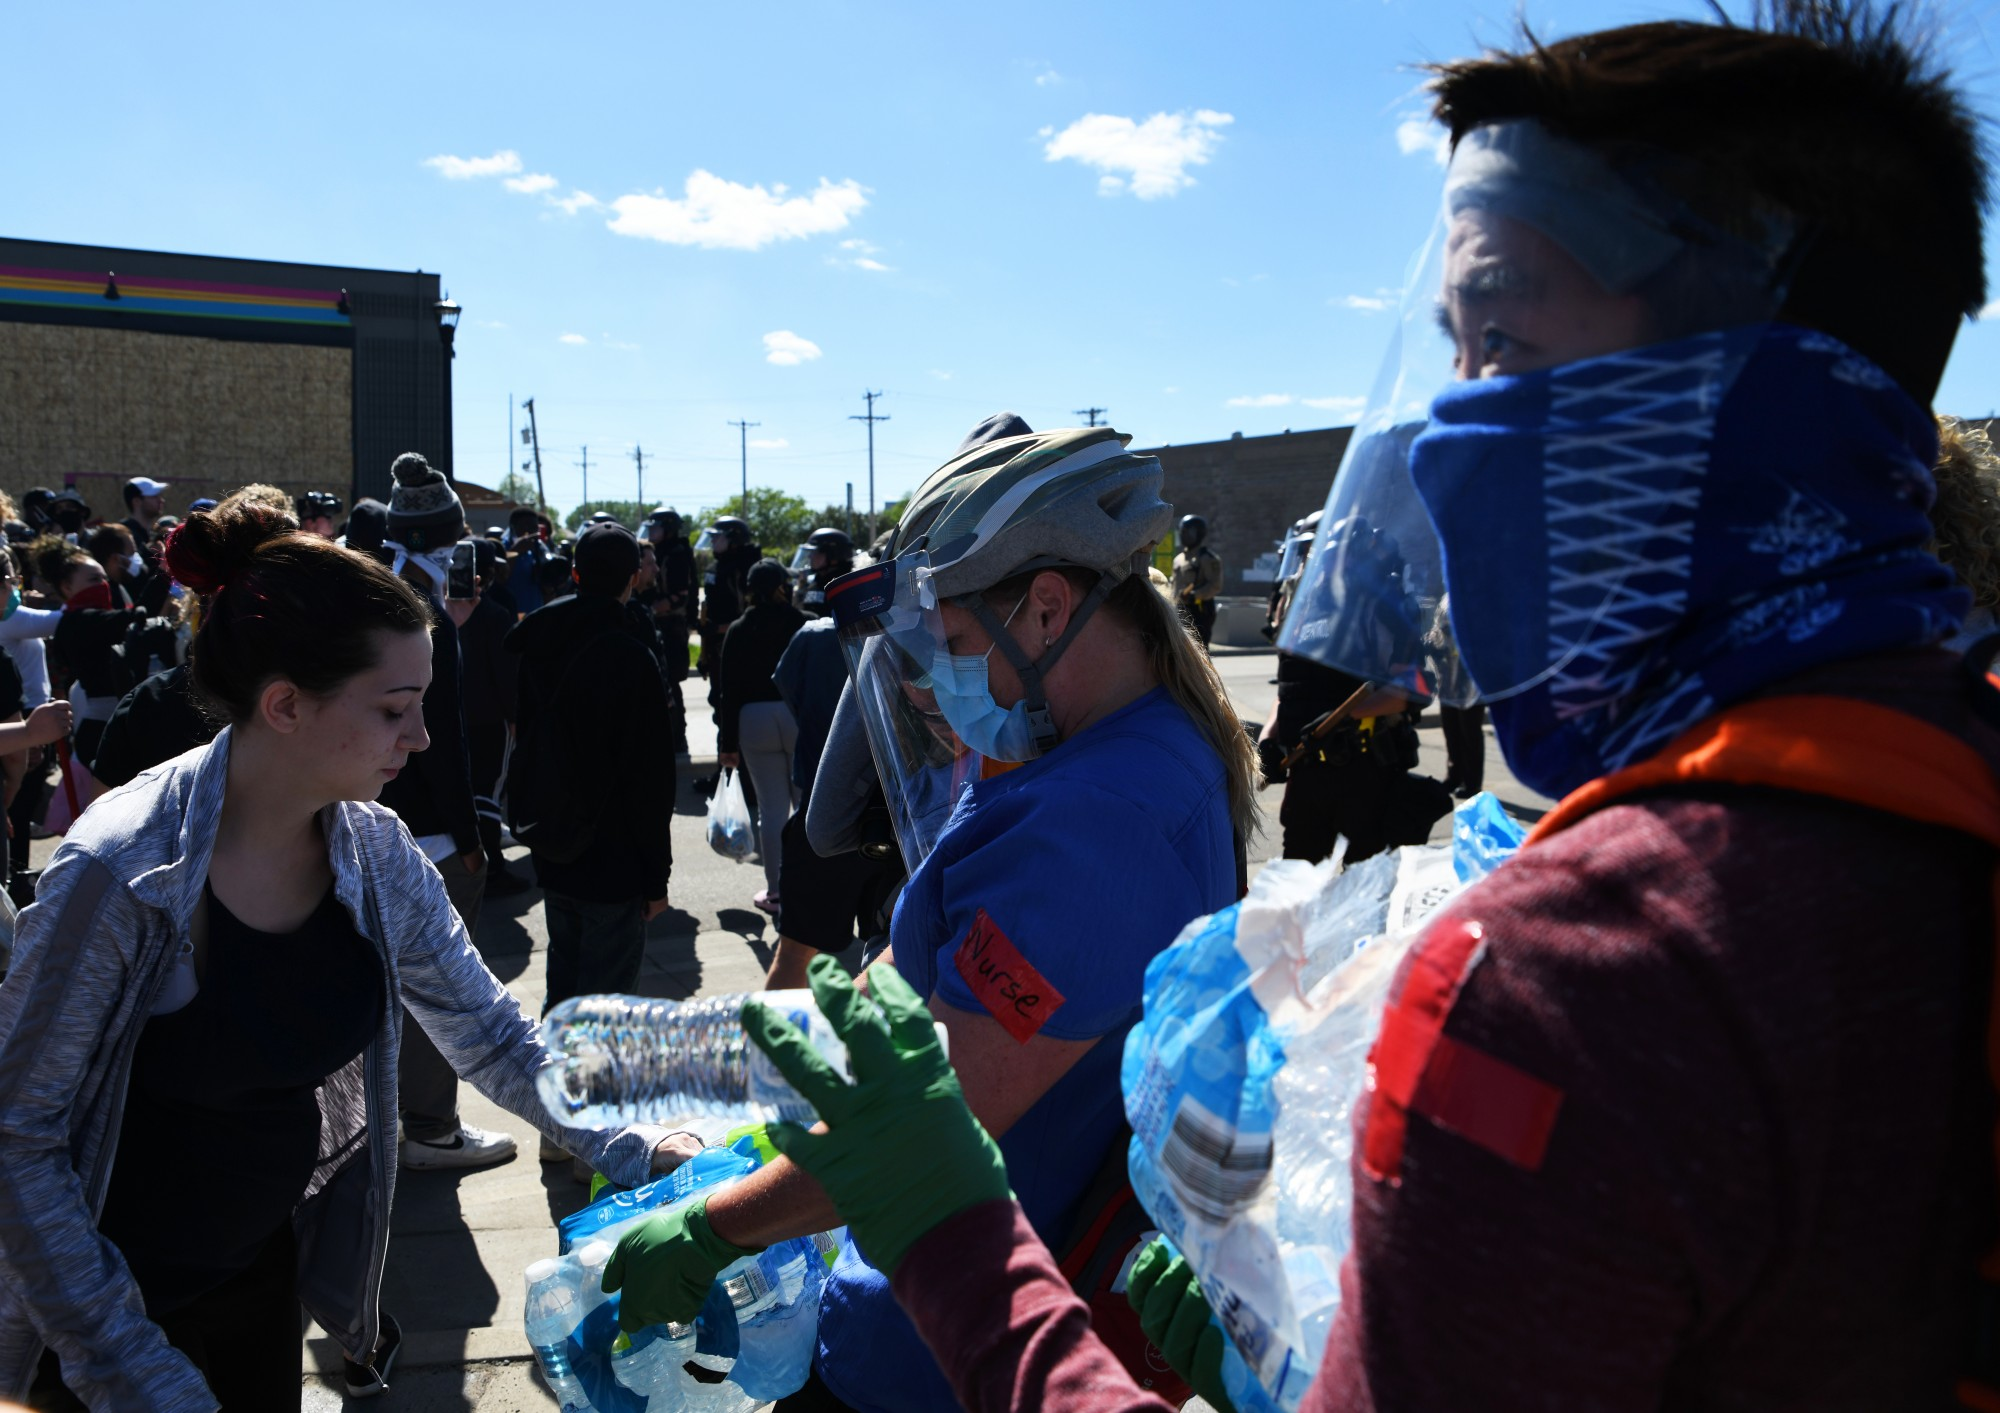 Volunteers hand out water to demonstrators near the MPD 3rd Precinct in Minneapolis on Friday, May 29.